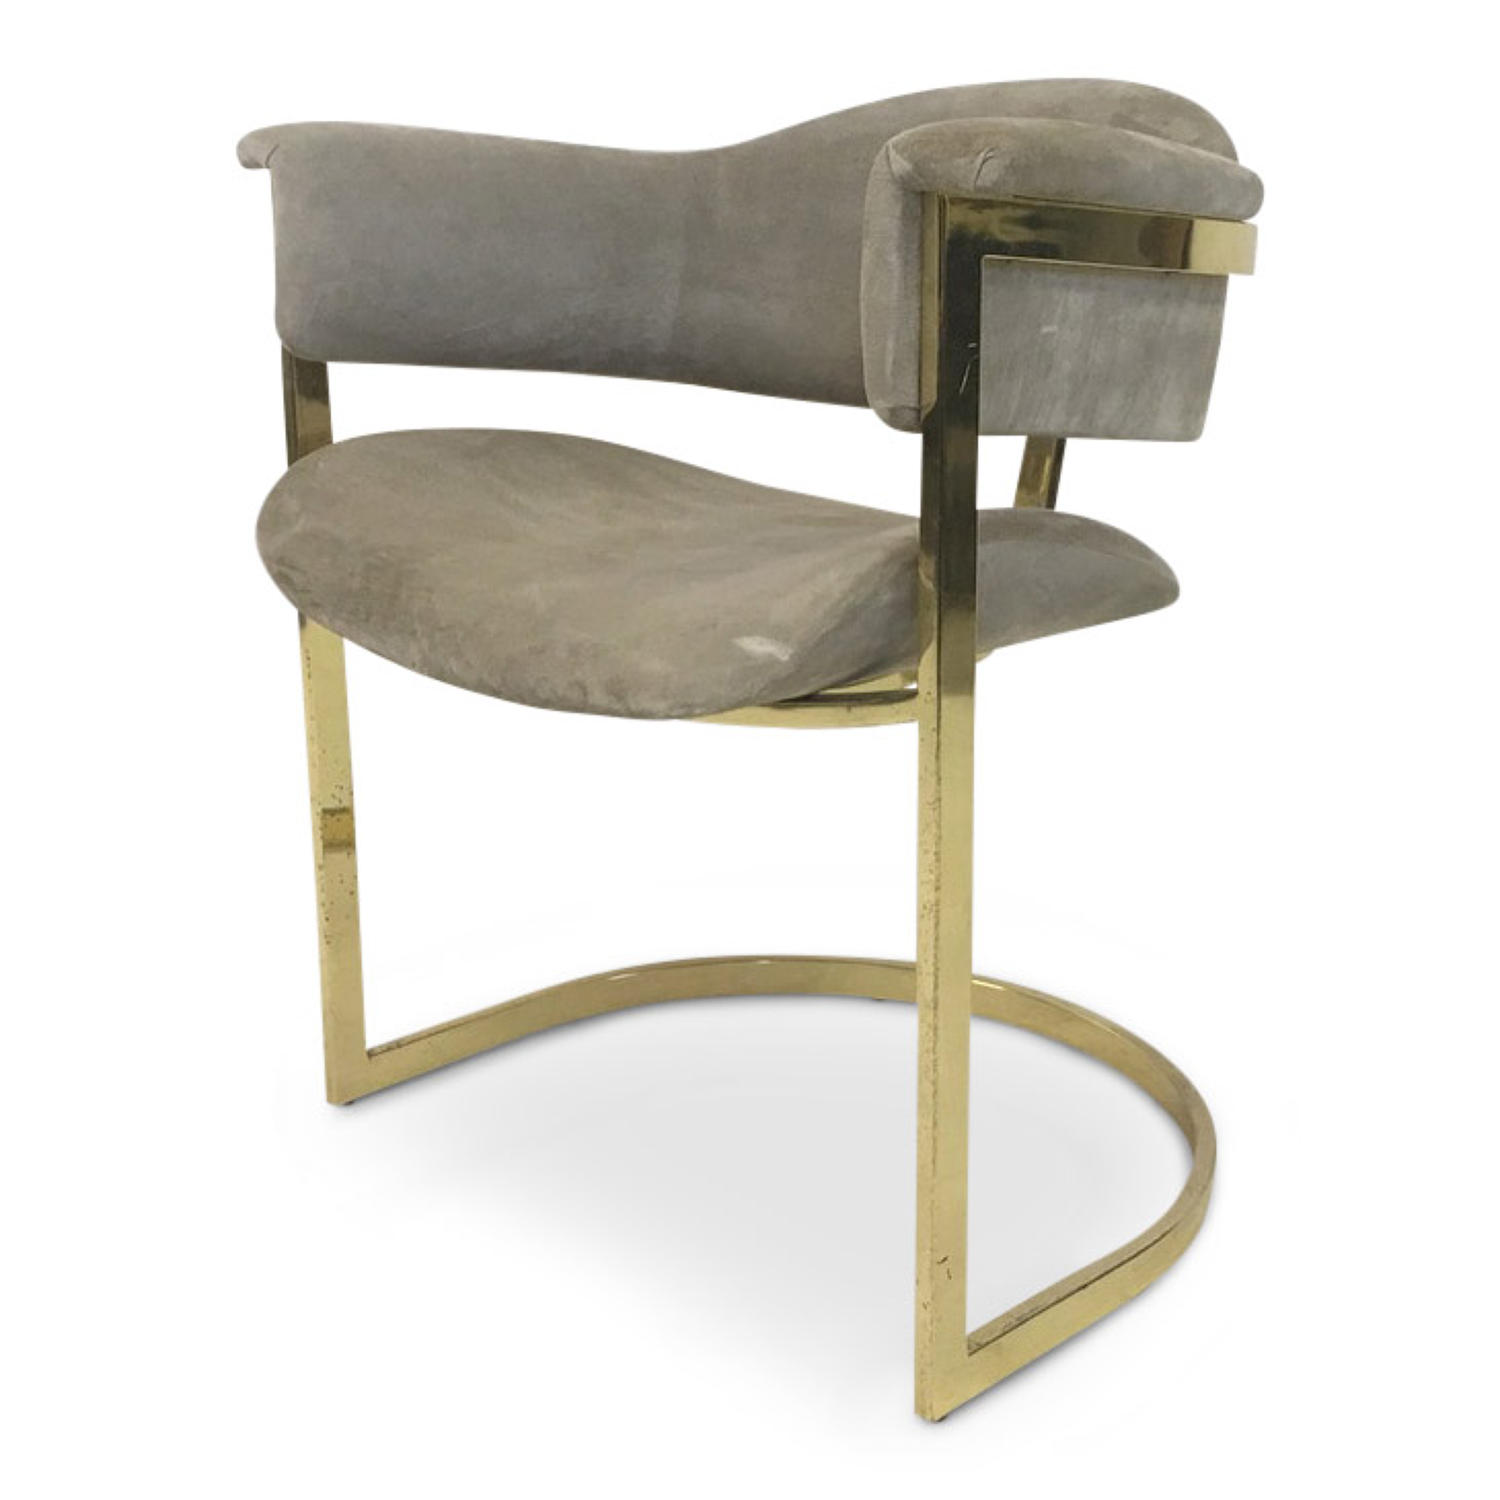 Gilt metal and alcantara desk chair